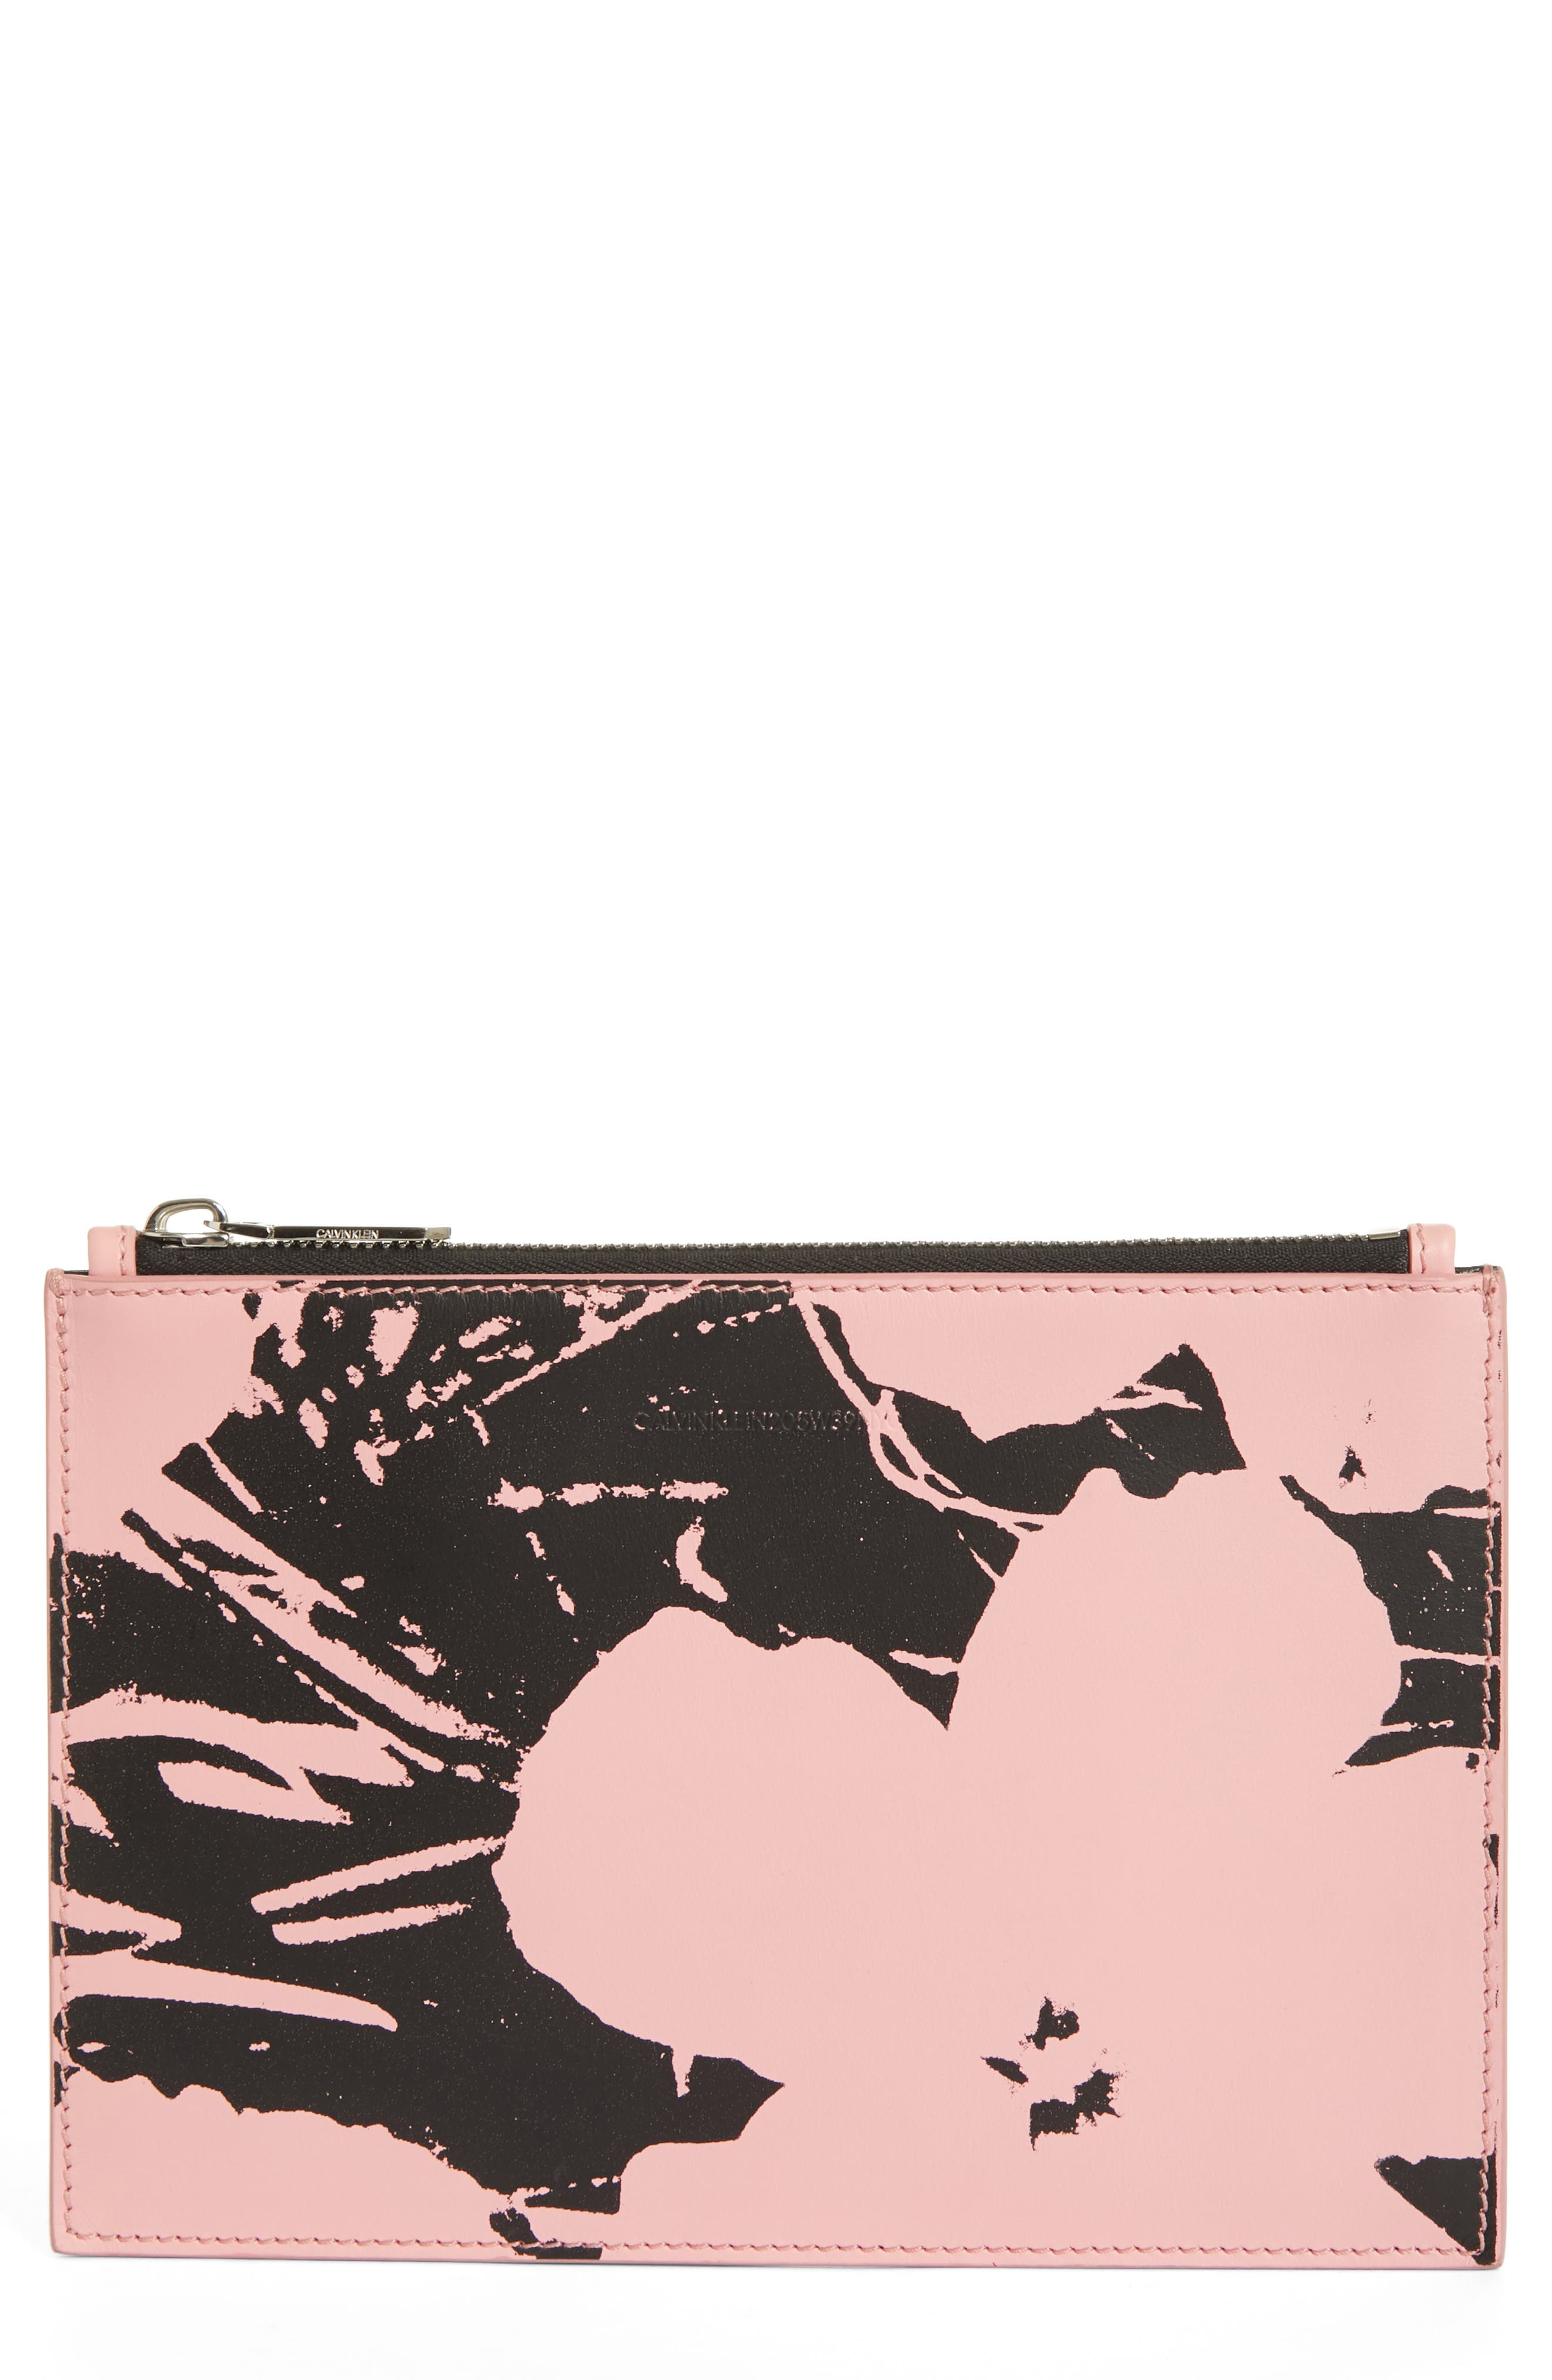 x Andy Warhol Foundation Flowers Leather Pouch,                             Main thumbnail 1, color,                             PINK/ BLACK